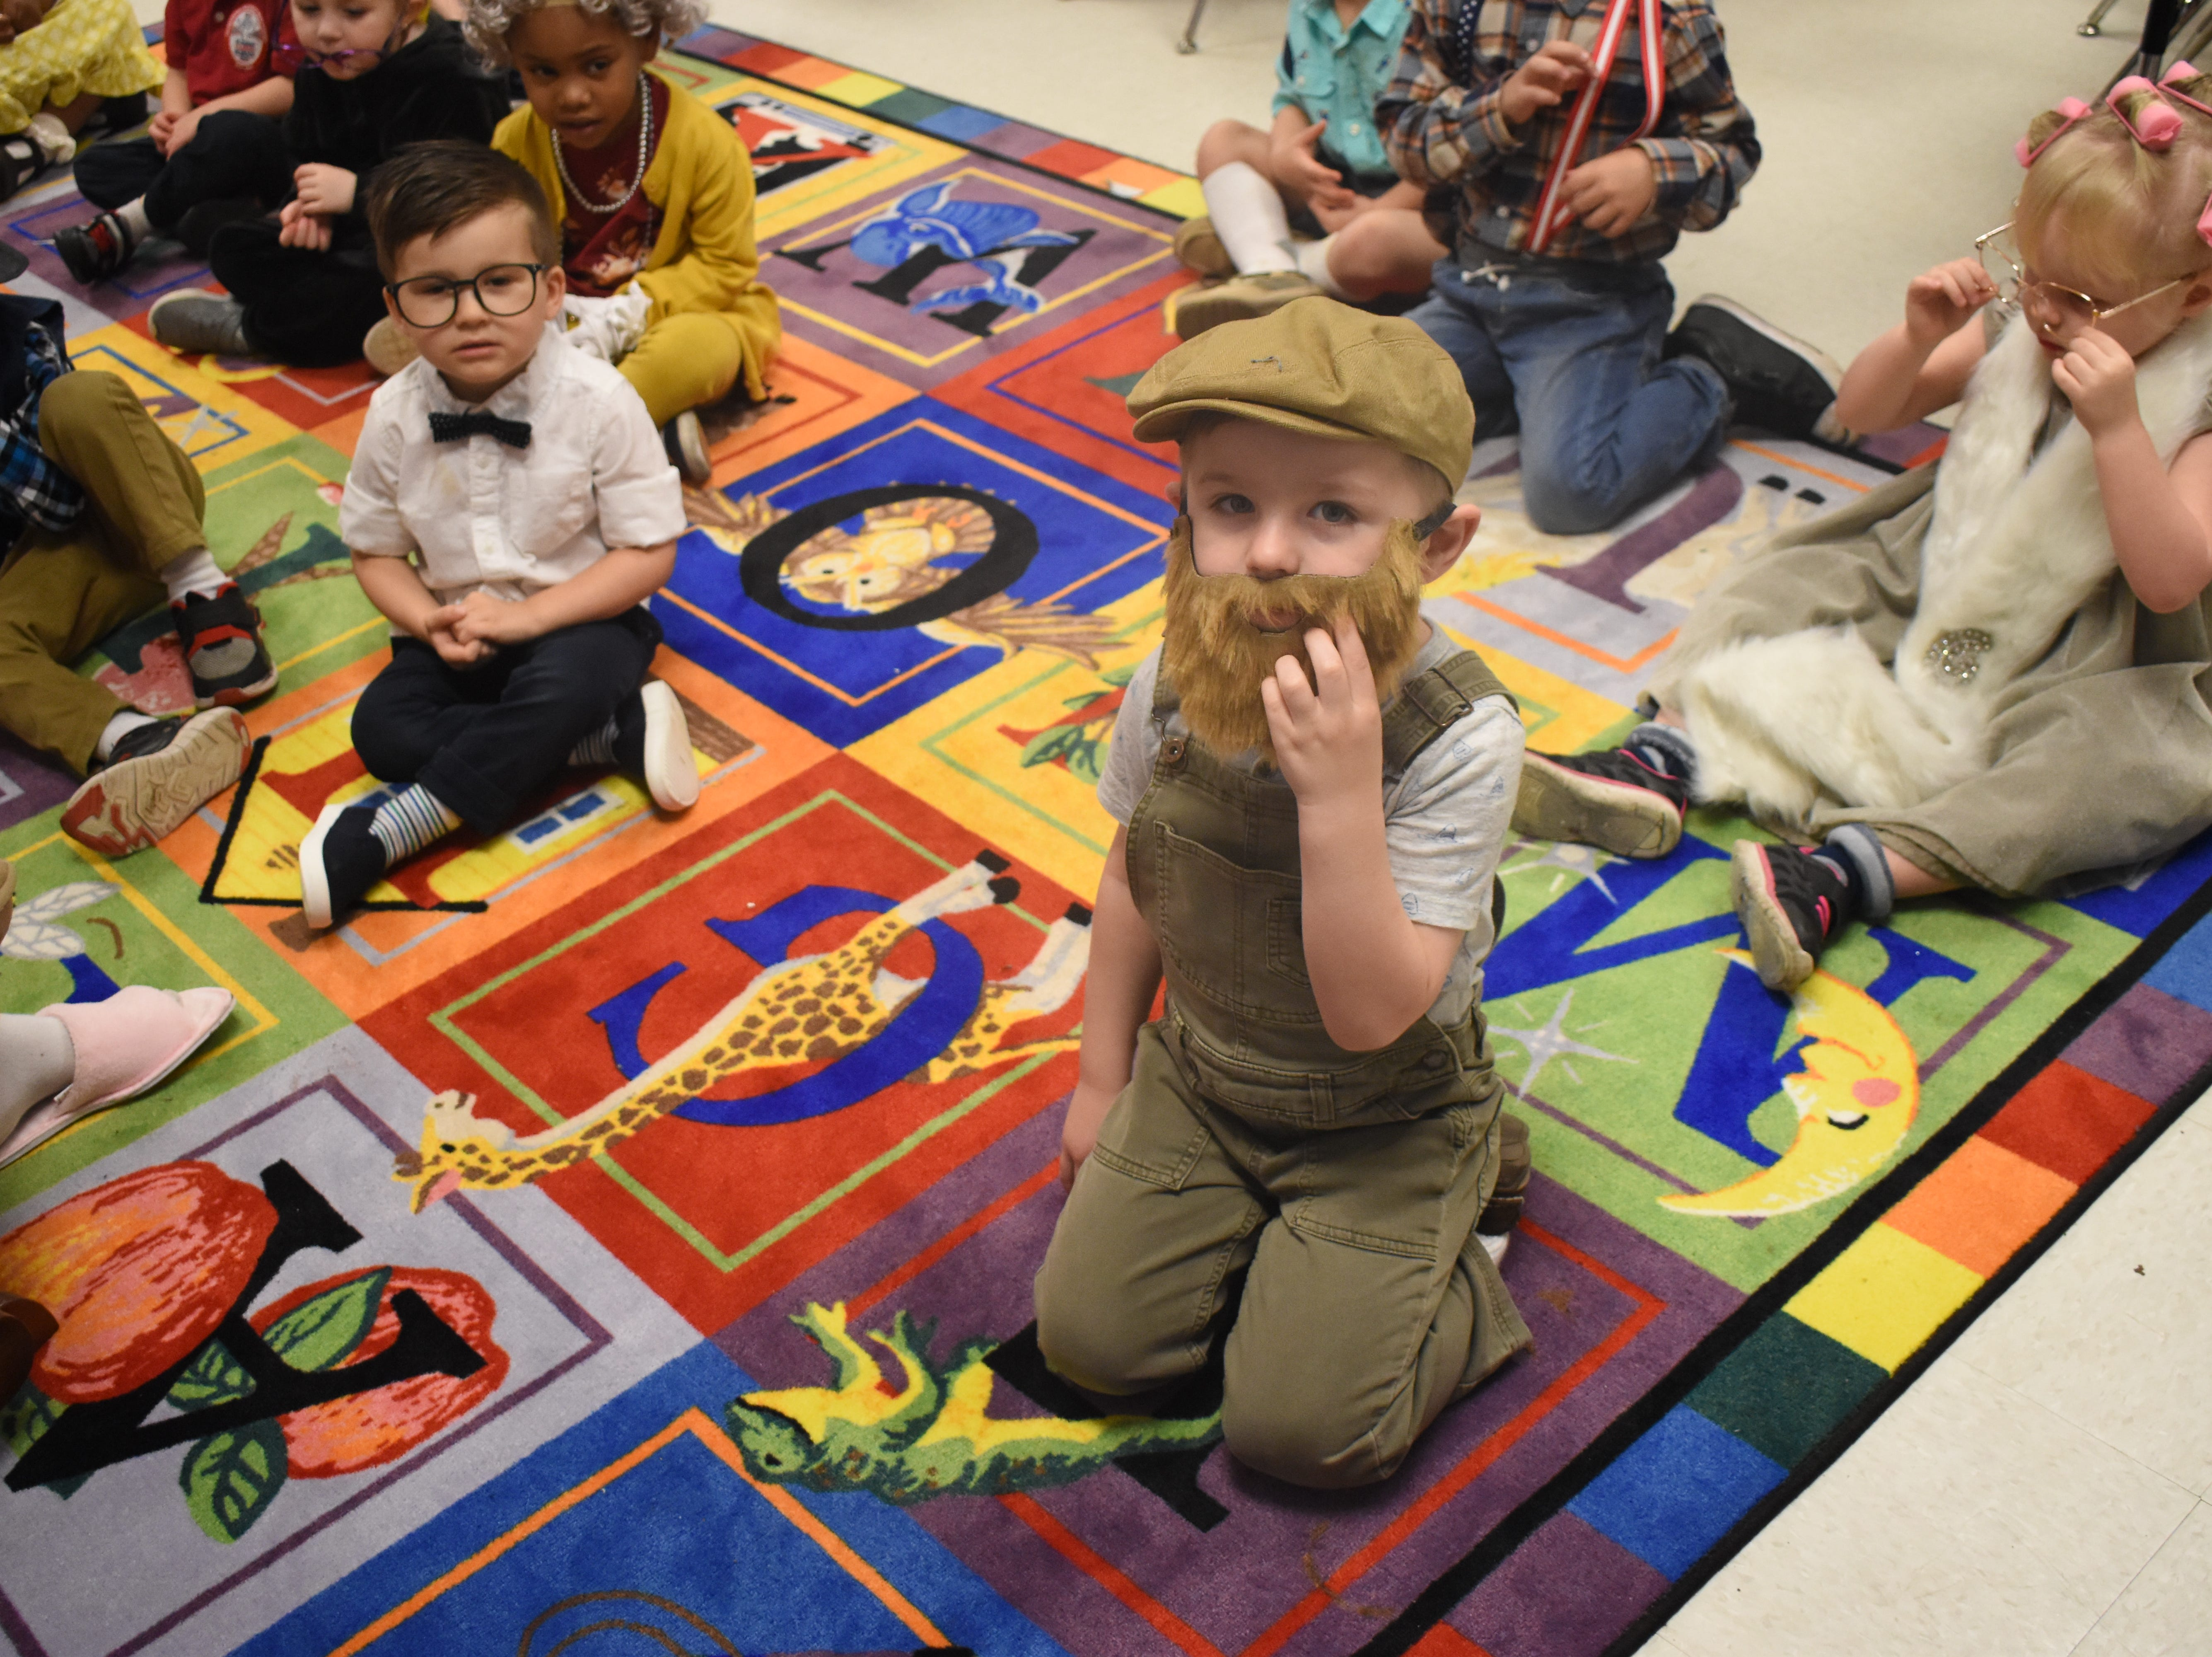 On Tuesday, Feb. 5, 2019, St. Frances Cabrini School pre-Kindergarten and Kindergarten students dressed up as 100-year-olds in celebration of 100 days of school.